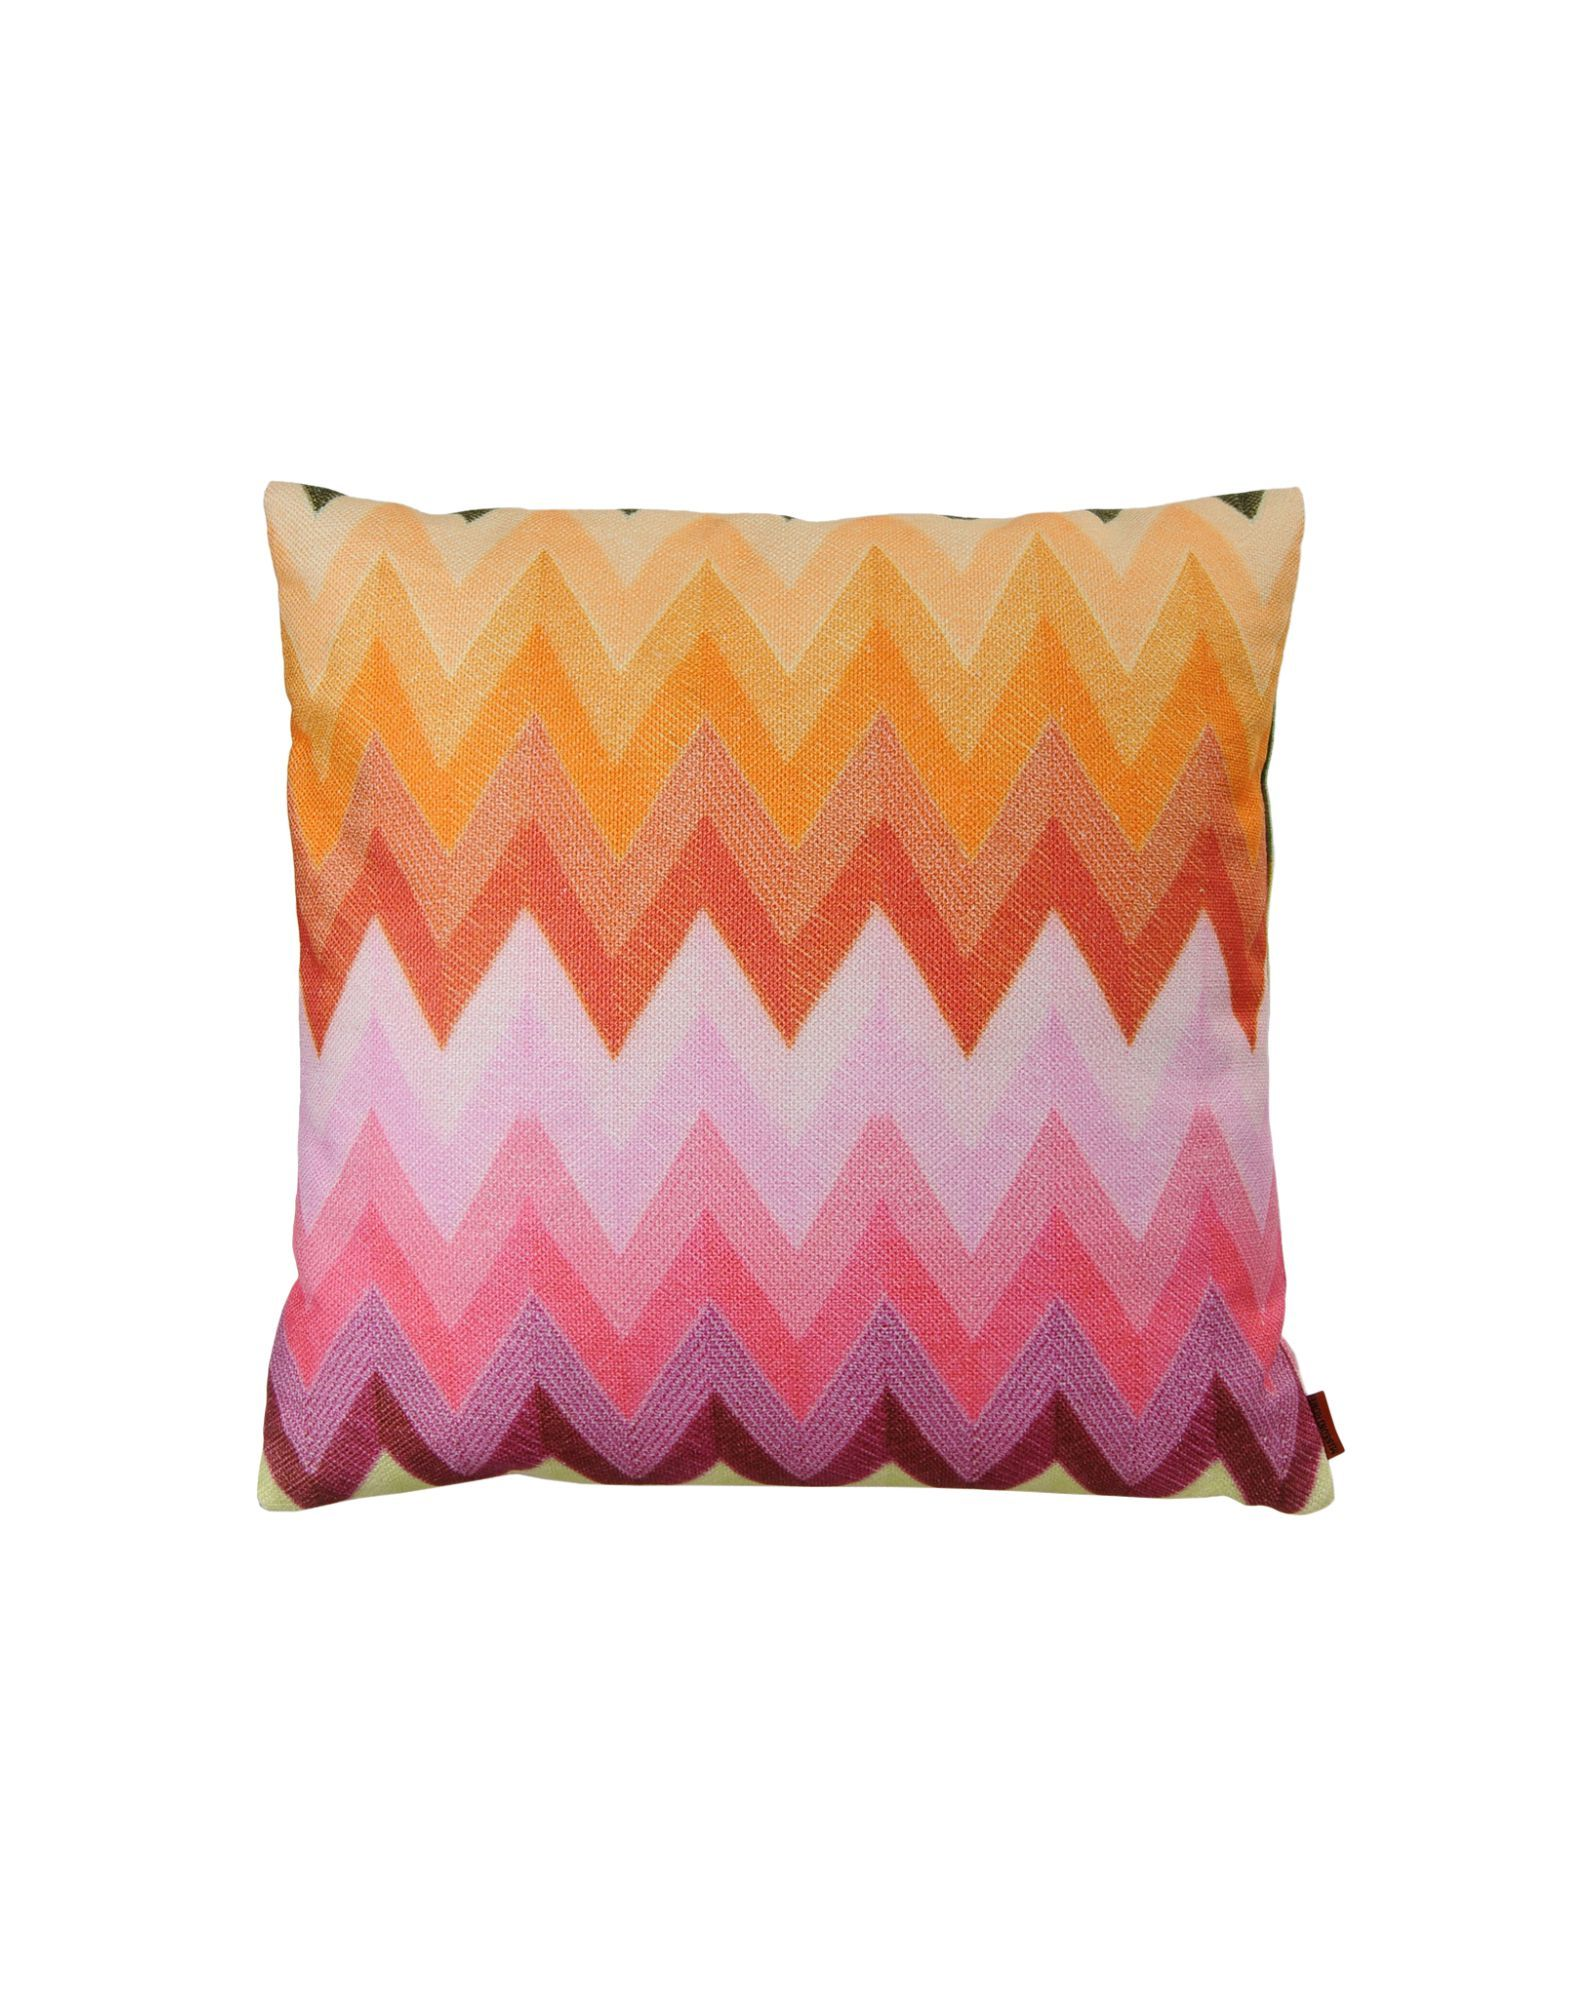 Sophisticated cushion with a shaded macro zigzag design